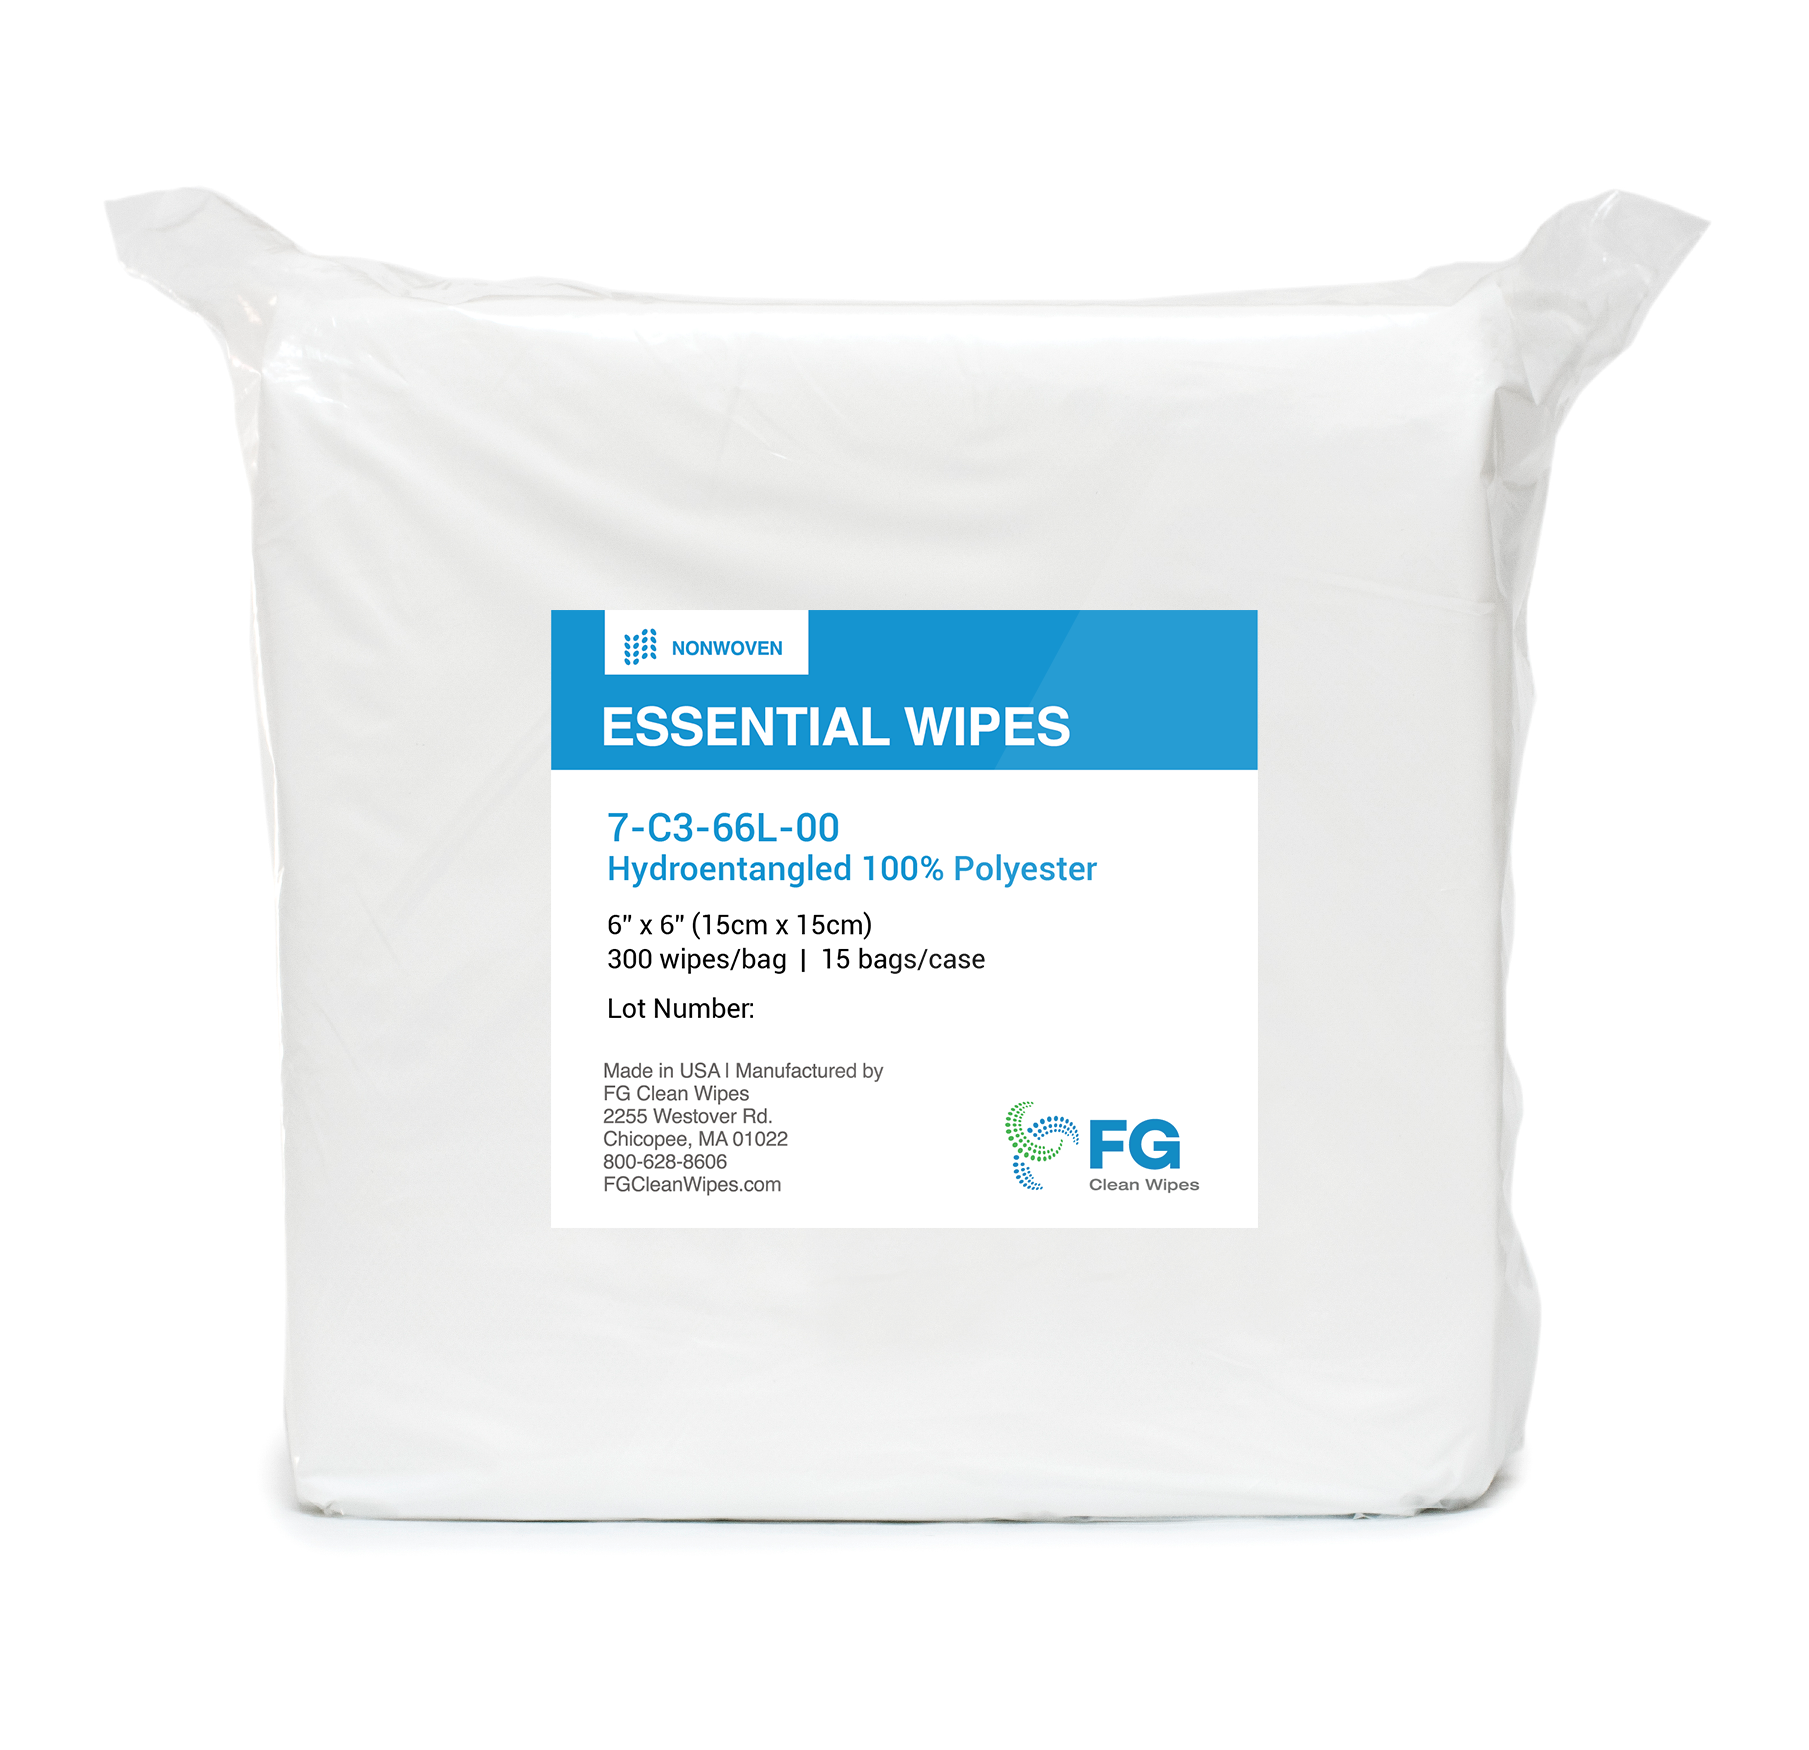 Hydroentangled 100% Polyester Wipes